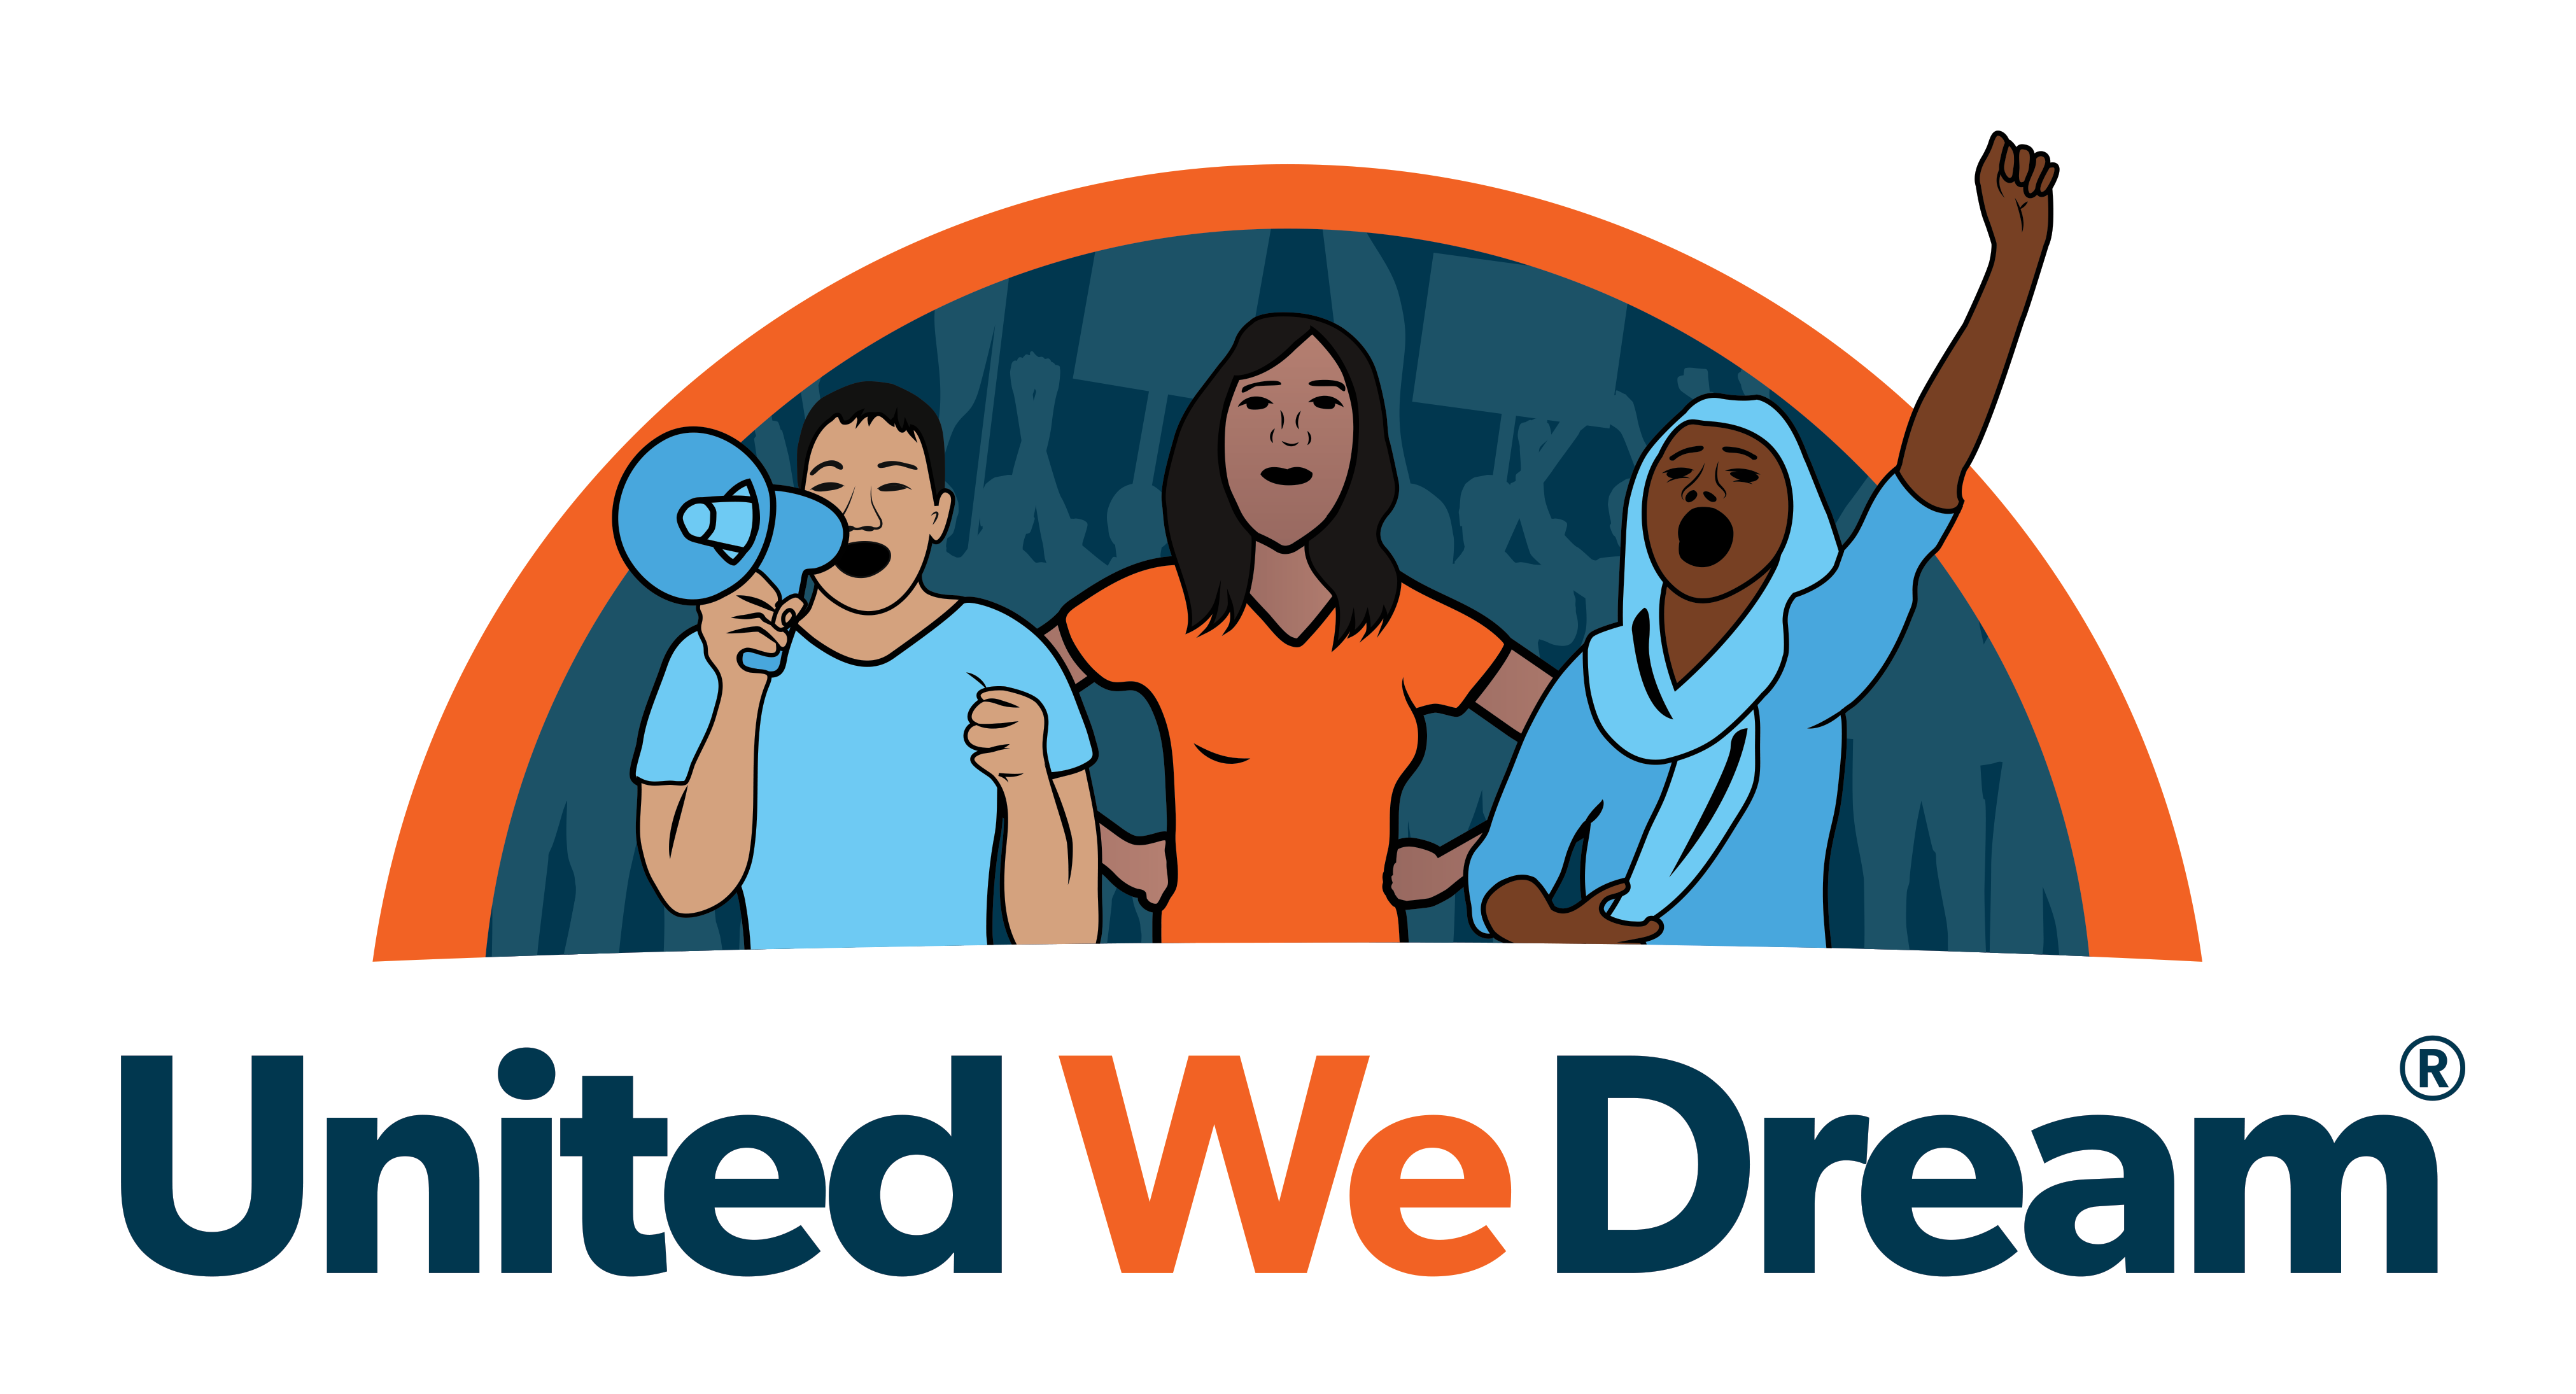 United We Dream | Community Partnerships | Foley Immigration Law | Attorney Alison Foley |  Offices in Tampa and Lakeland | Visas, Green Cards, Deportation Defense & Helping Survivors of Abuse and Exploitation